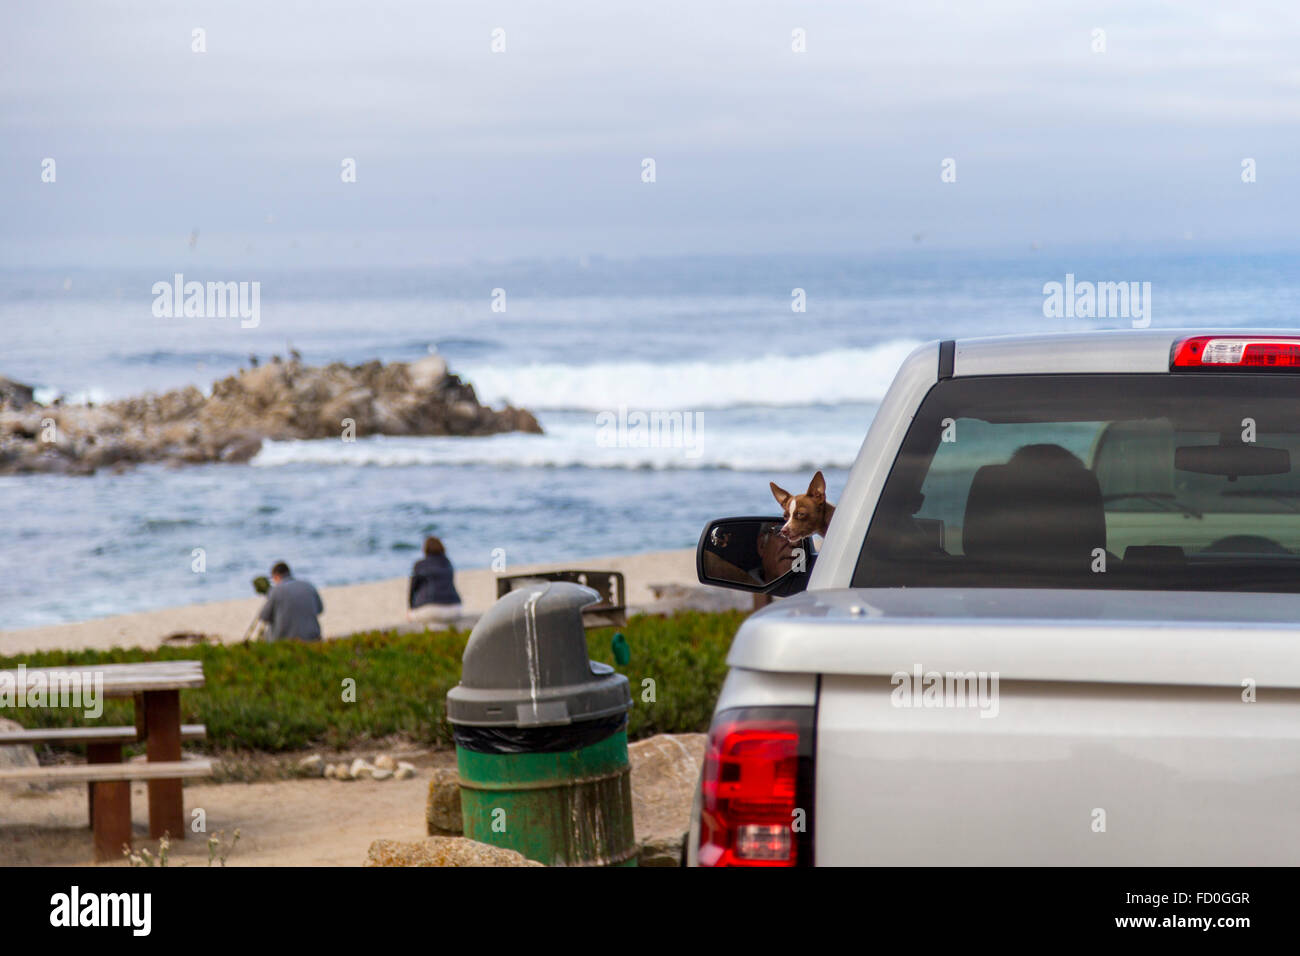 Small dog poking his head out of a car window in Monterey bay, California - Stock Image